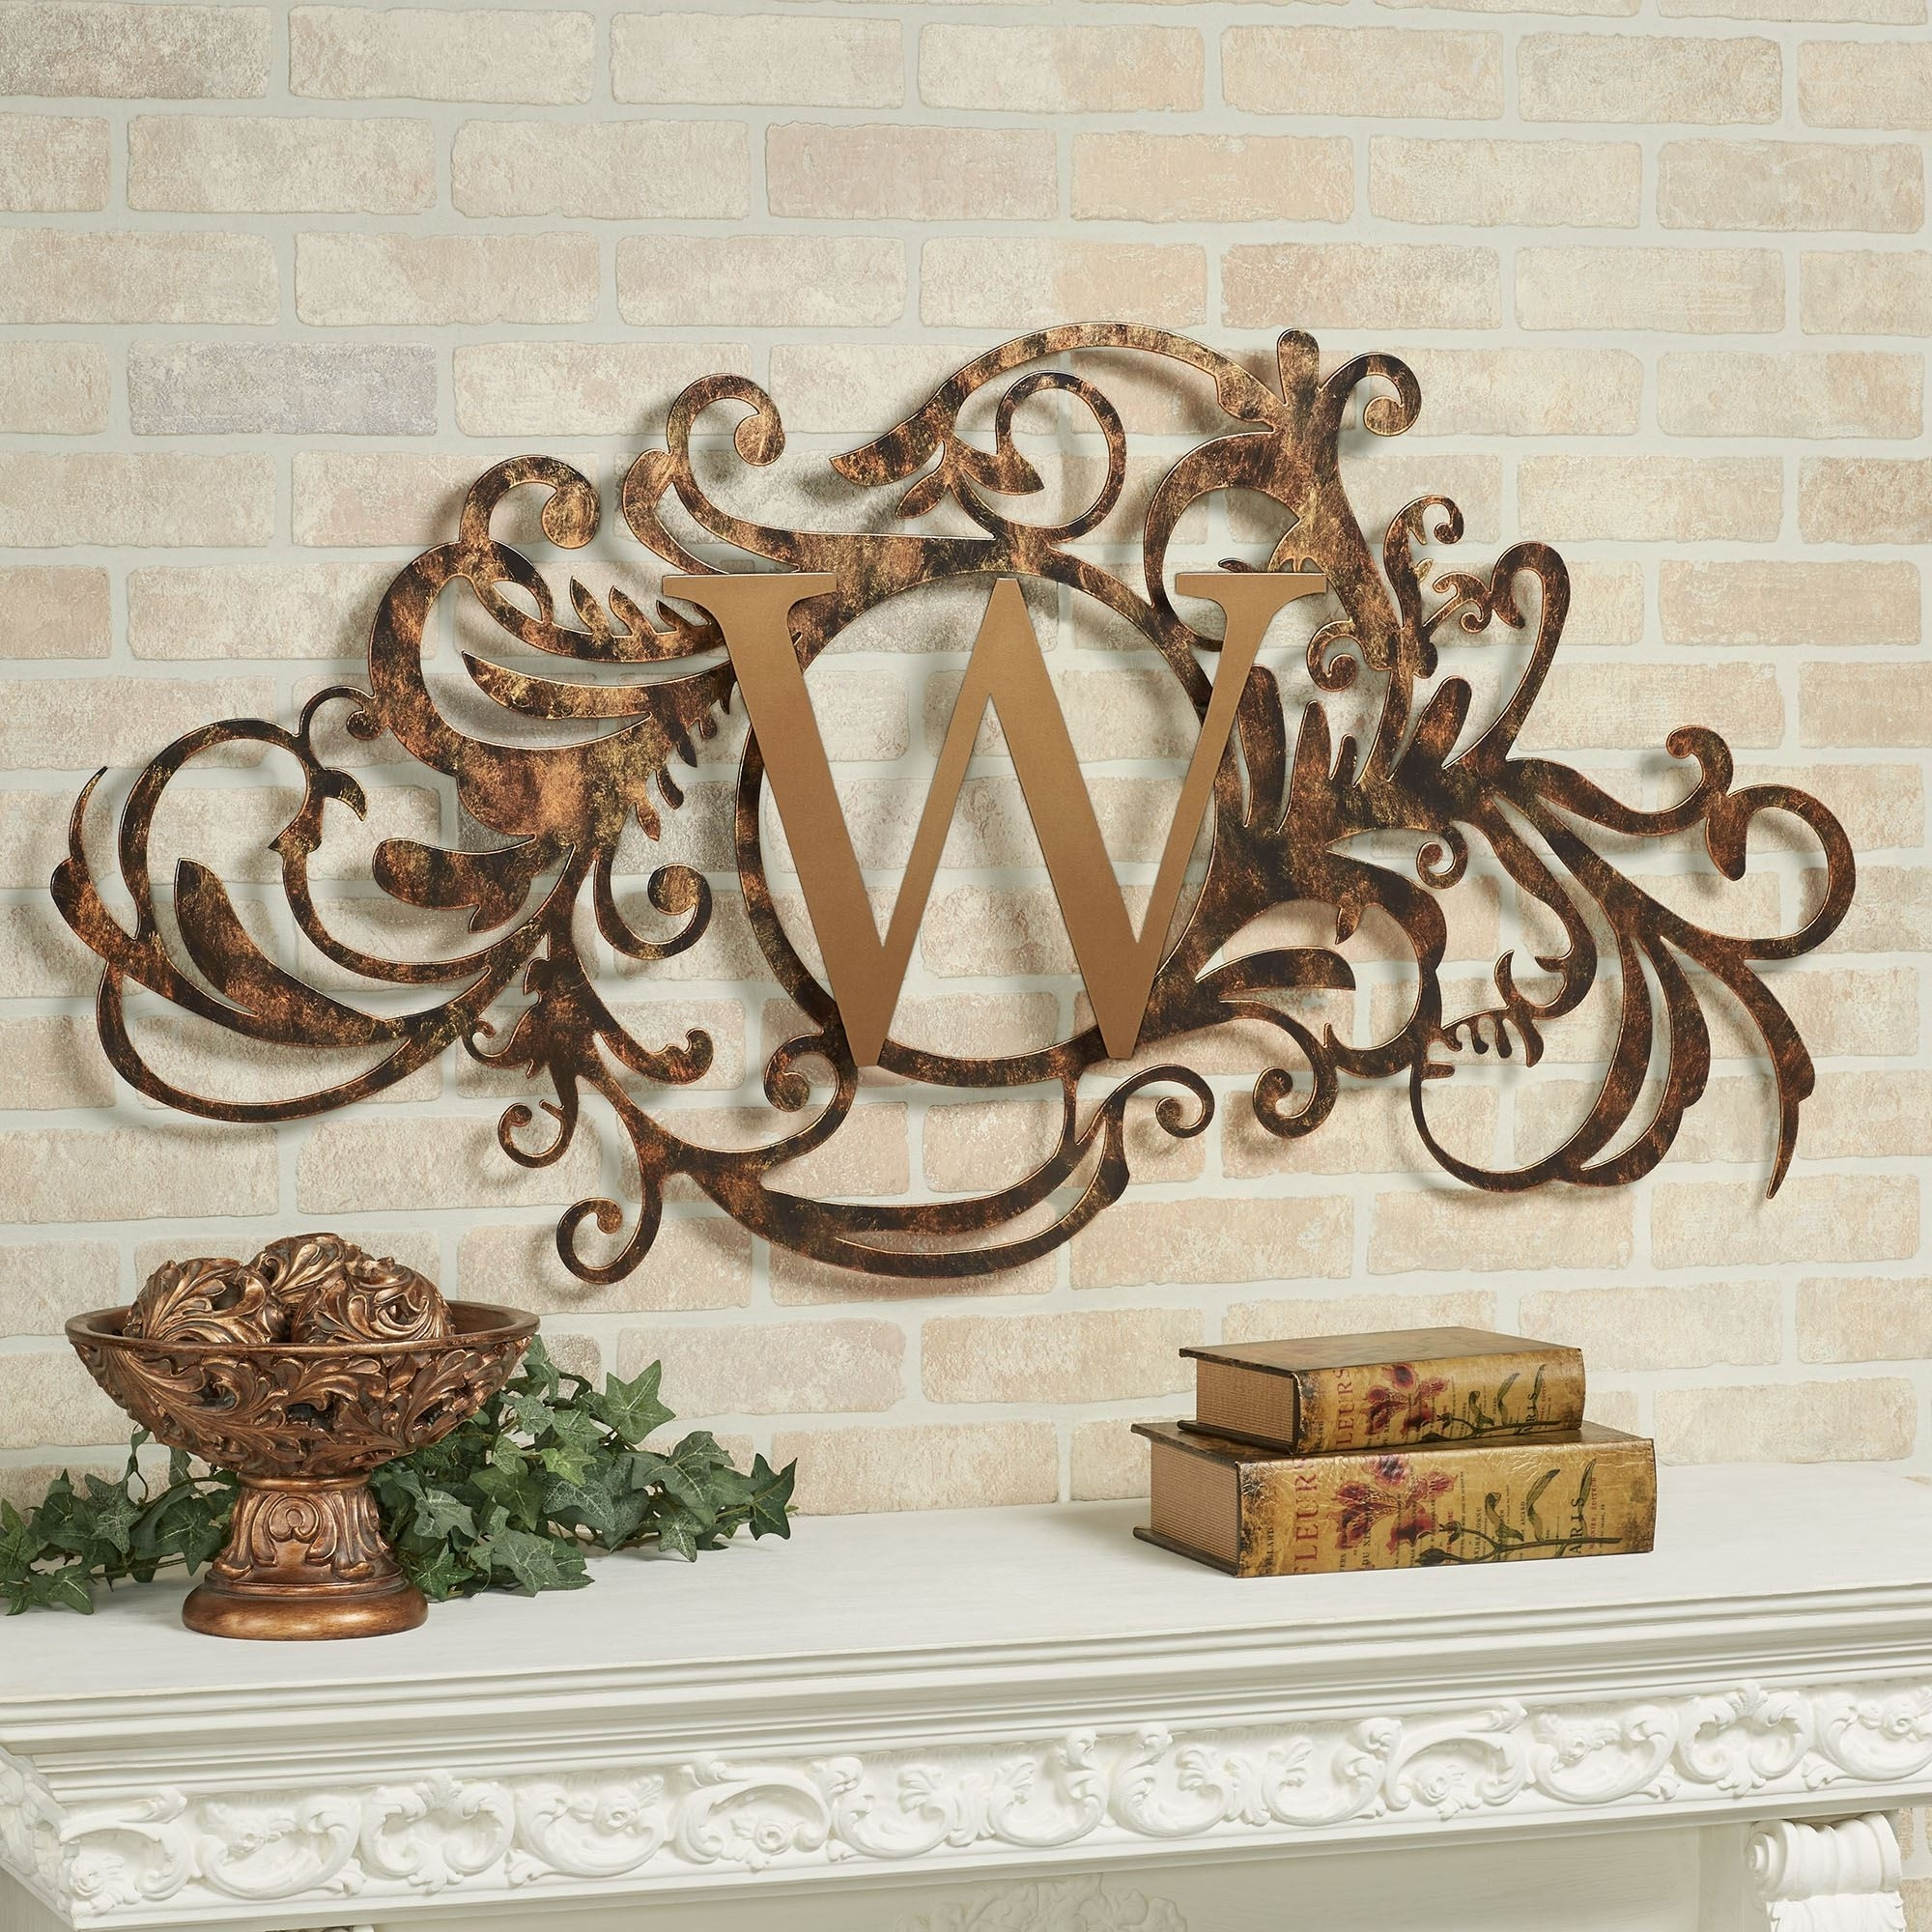 Spanish Iron Wall Decor Entrancing Best Wrought Iron Wall Decor Intended For Latest Touch Of Class Wall Art (View 16 of 20)